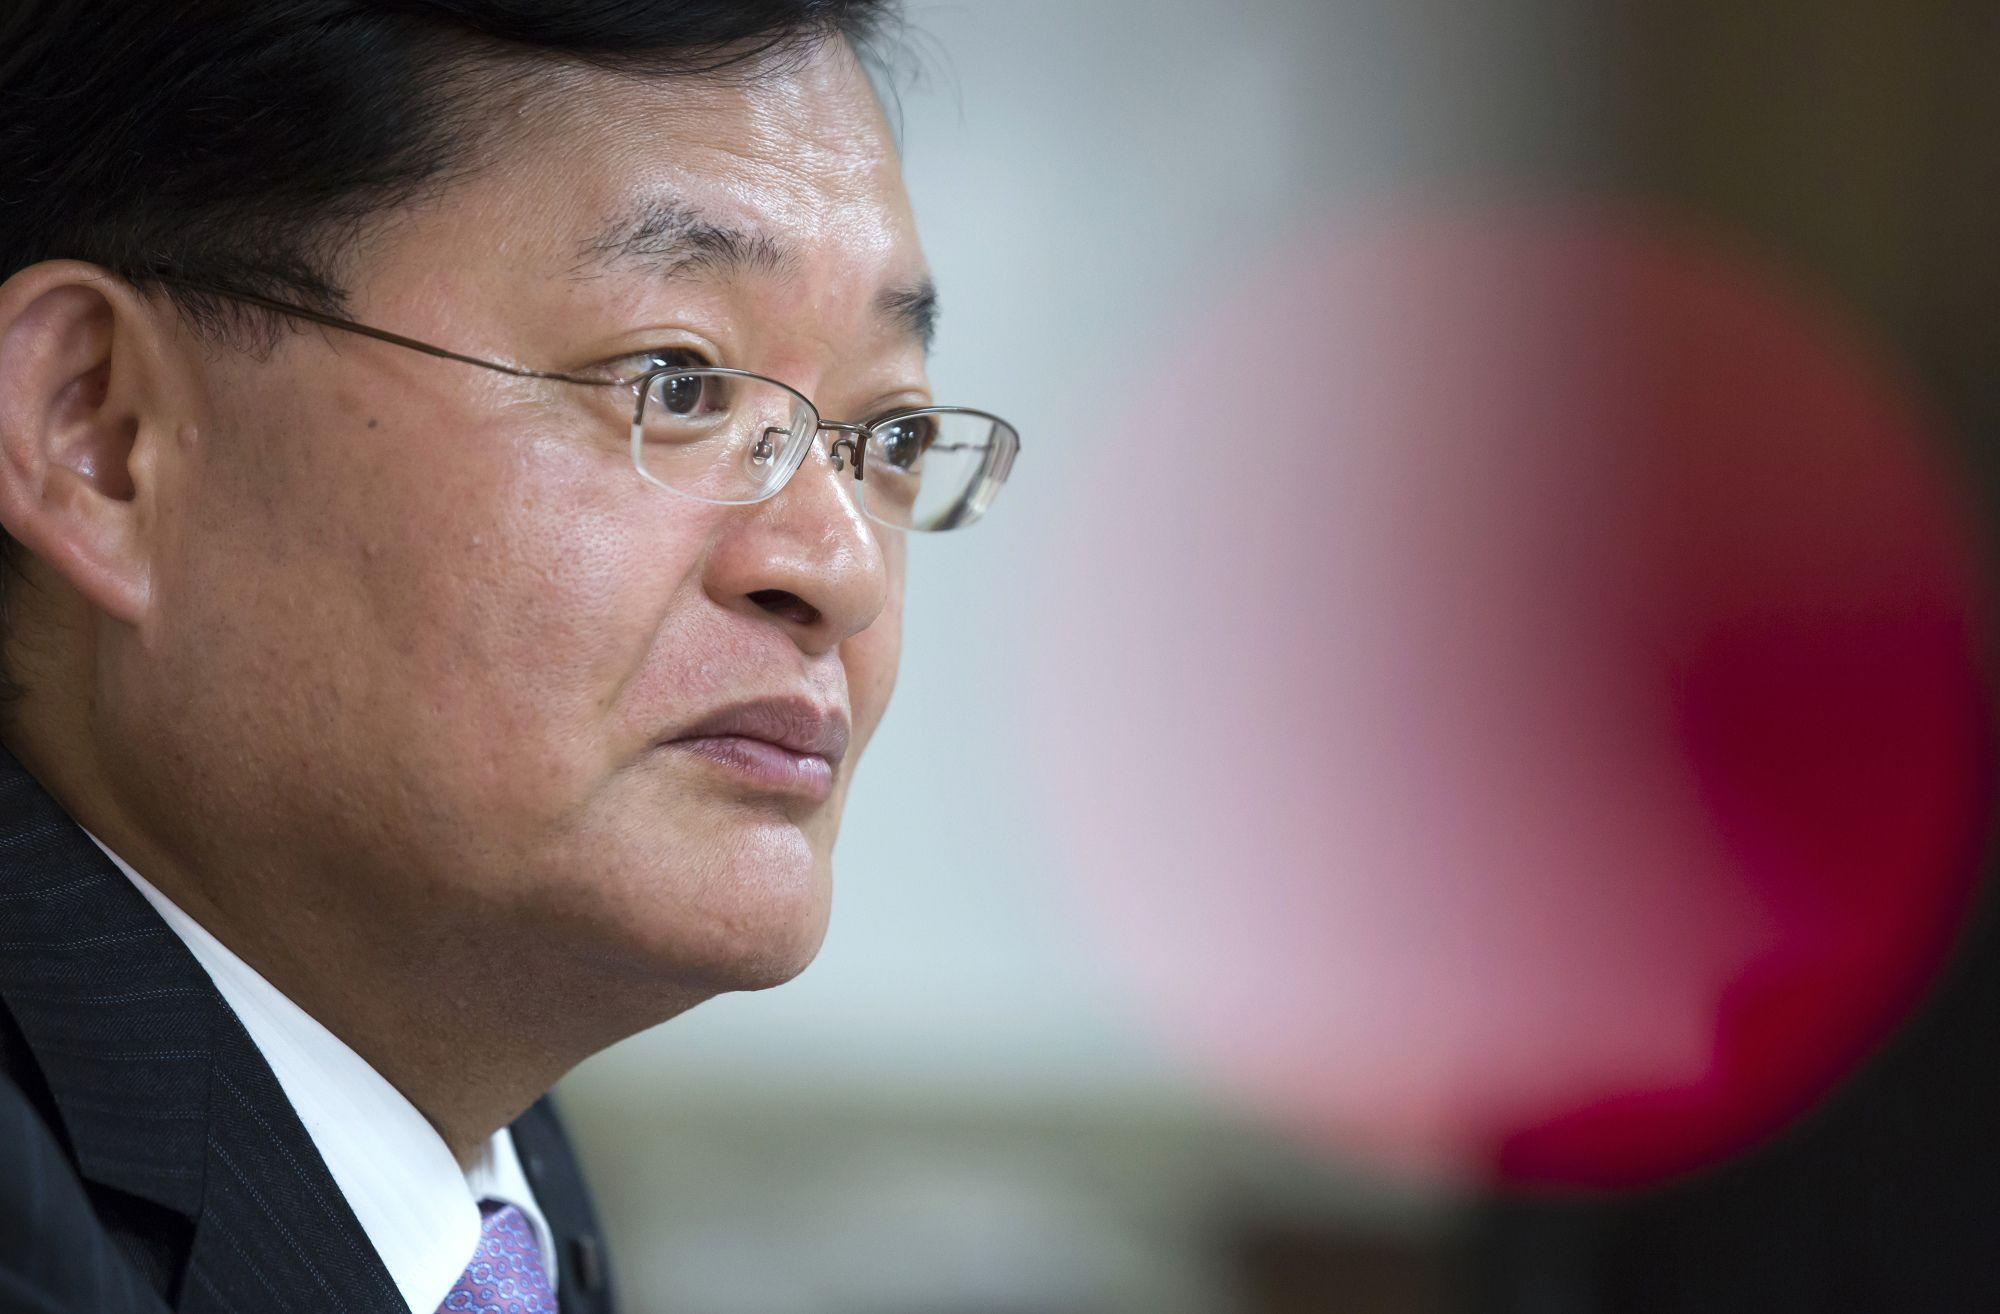 Toshiba's CEO to Step Down After Losing Employee Support – Yahoo Finance